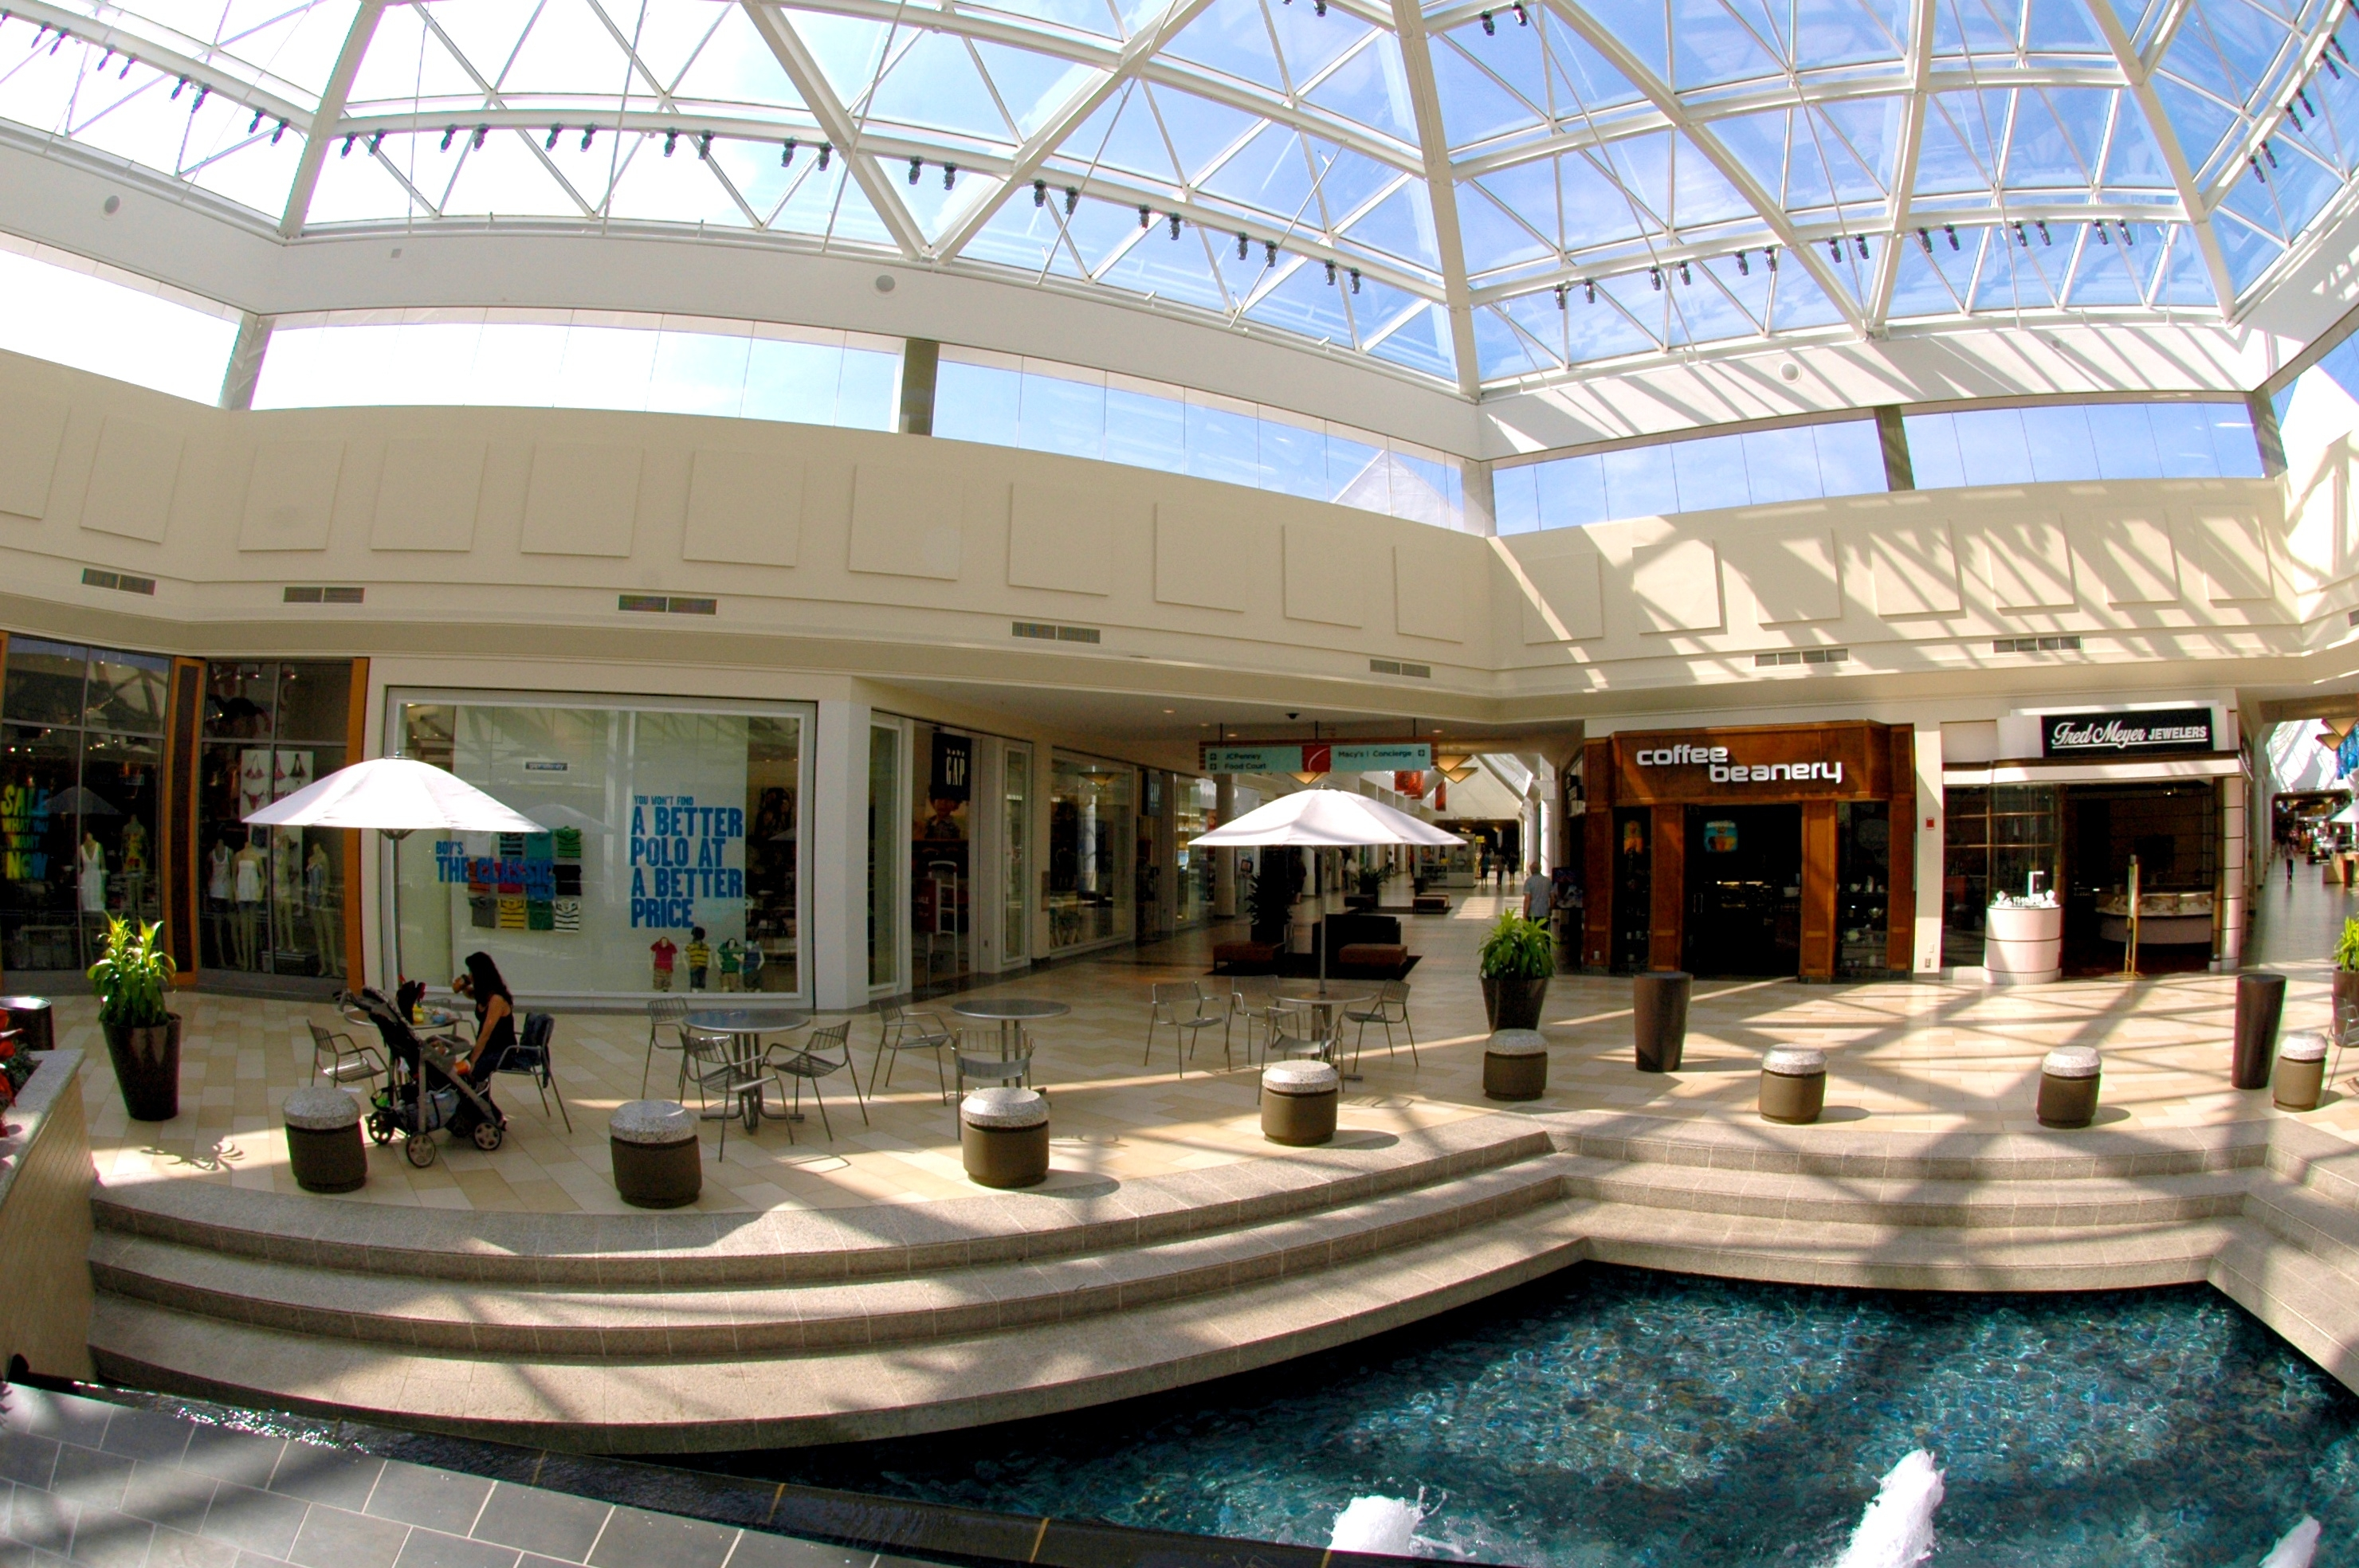 The Christiana Mall is a super-regional shopping mall located between the cities of Newark and Wilmington, Delaware, United States. The mall is situated at the intersection of Interstate 95 (exits 4A-B) and Delaware Route 1, near the Cavaliers Country Club, and close to .